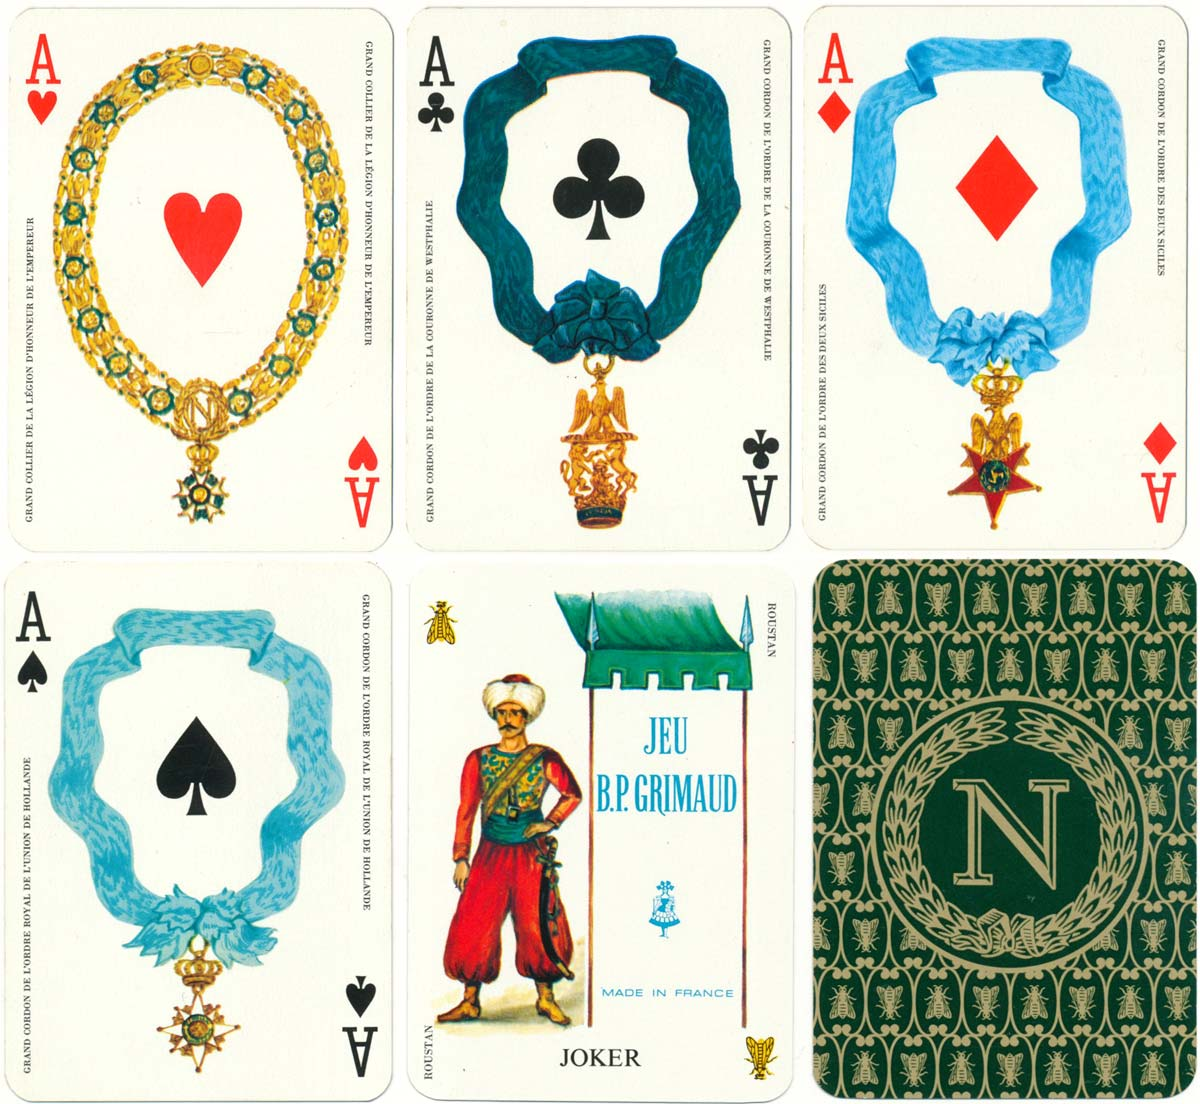 A dual-deck created by Matéja celebrating the bicentenary of the birth of Napoleon (1769-1969)